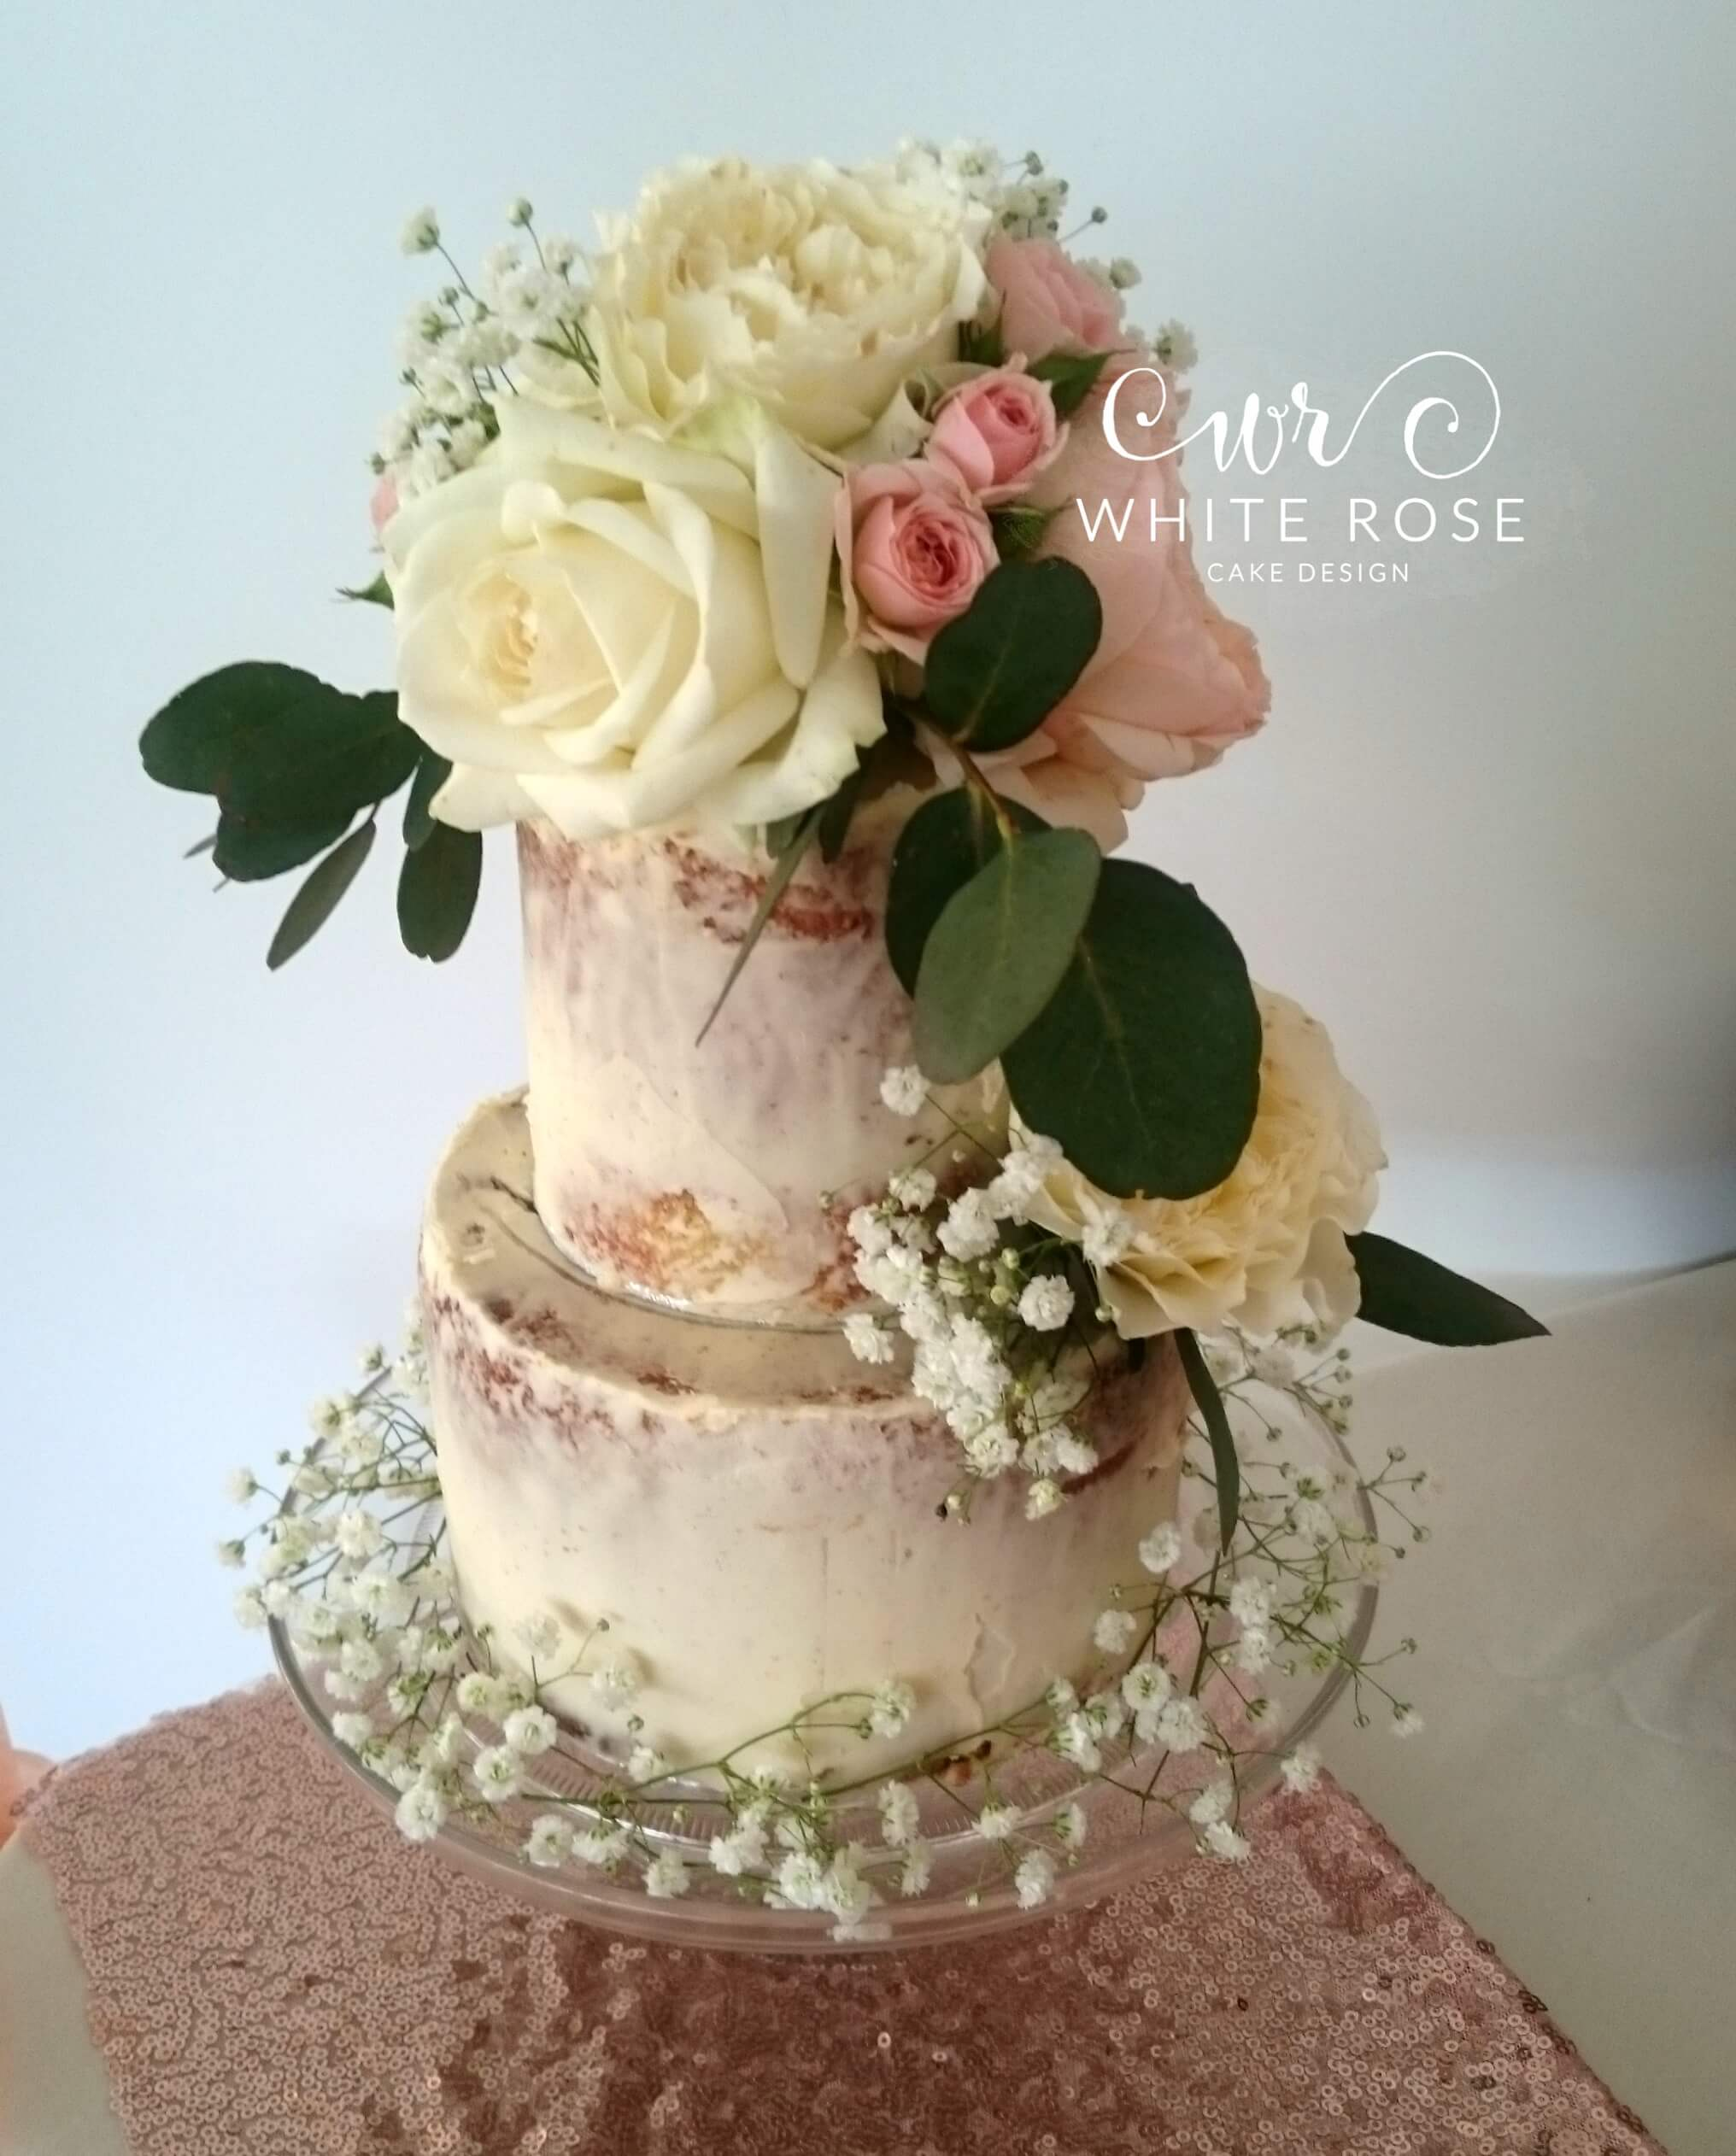 Semi-Naked Wedding Cake with Fresh Flowers by White Rose Cake Design, Wedding Cakes in West Yorkshire